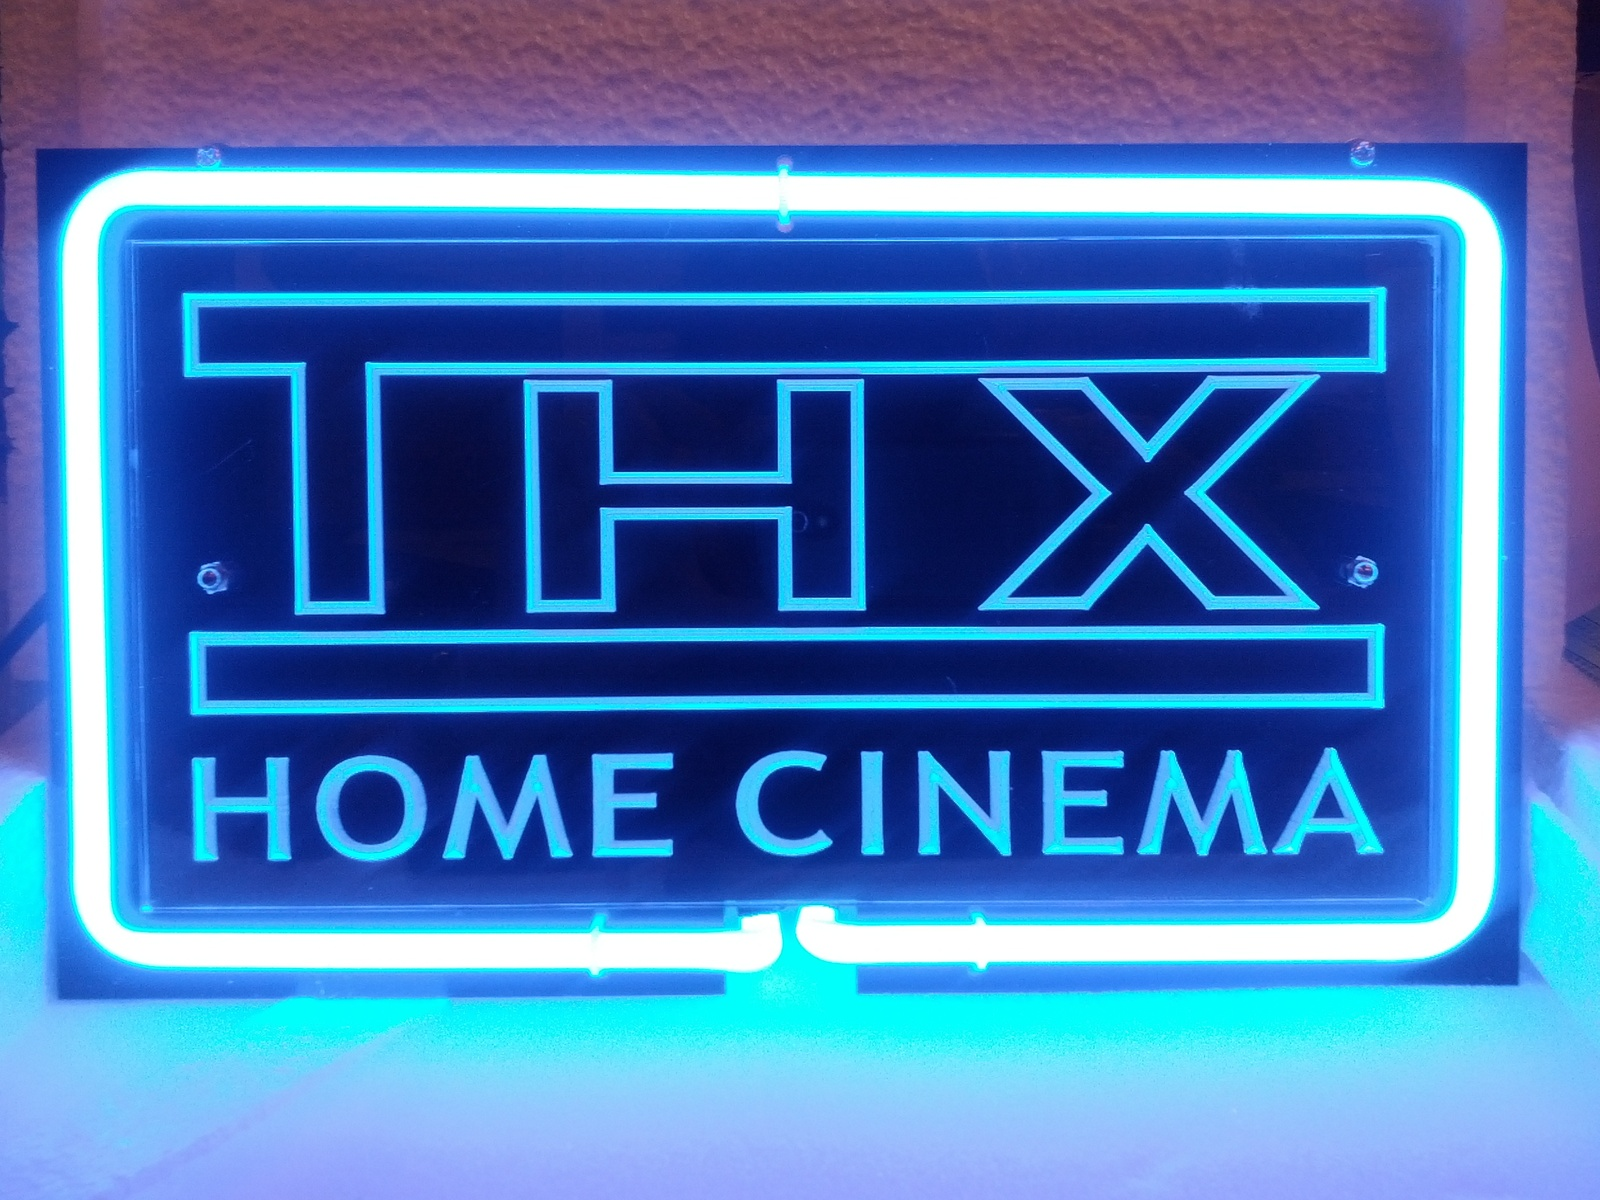 Sb152 thx home cinema video decor display beer bar neon - Thx home cinema ...